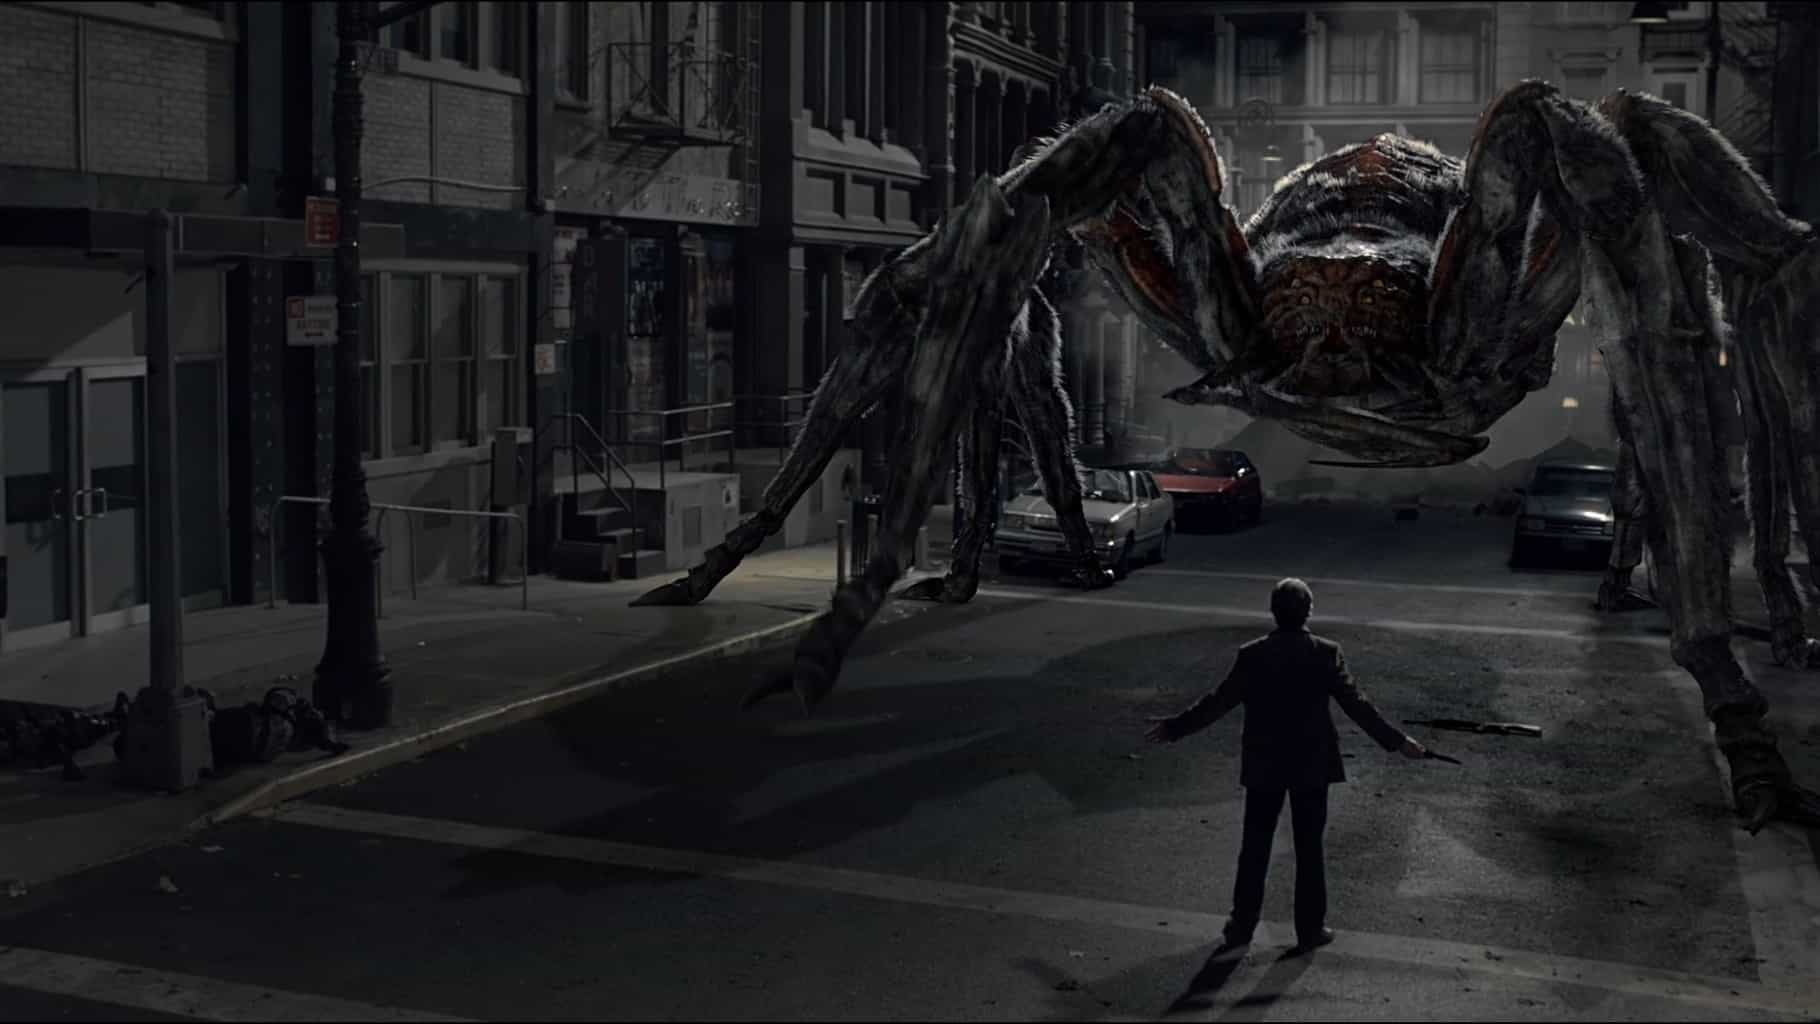 A revival of the giant spider film in Spiders 3D (2013)